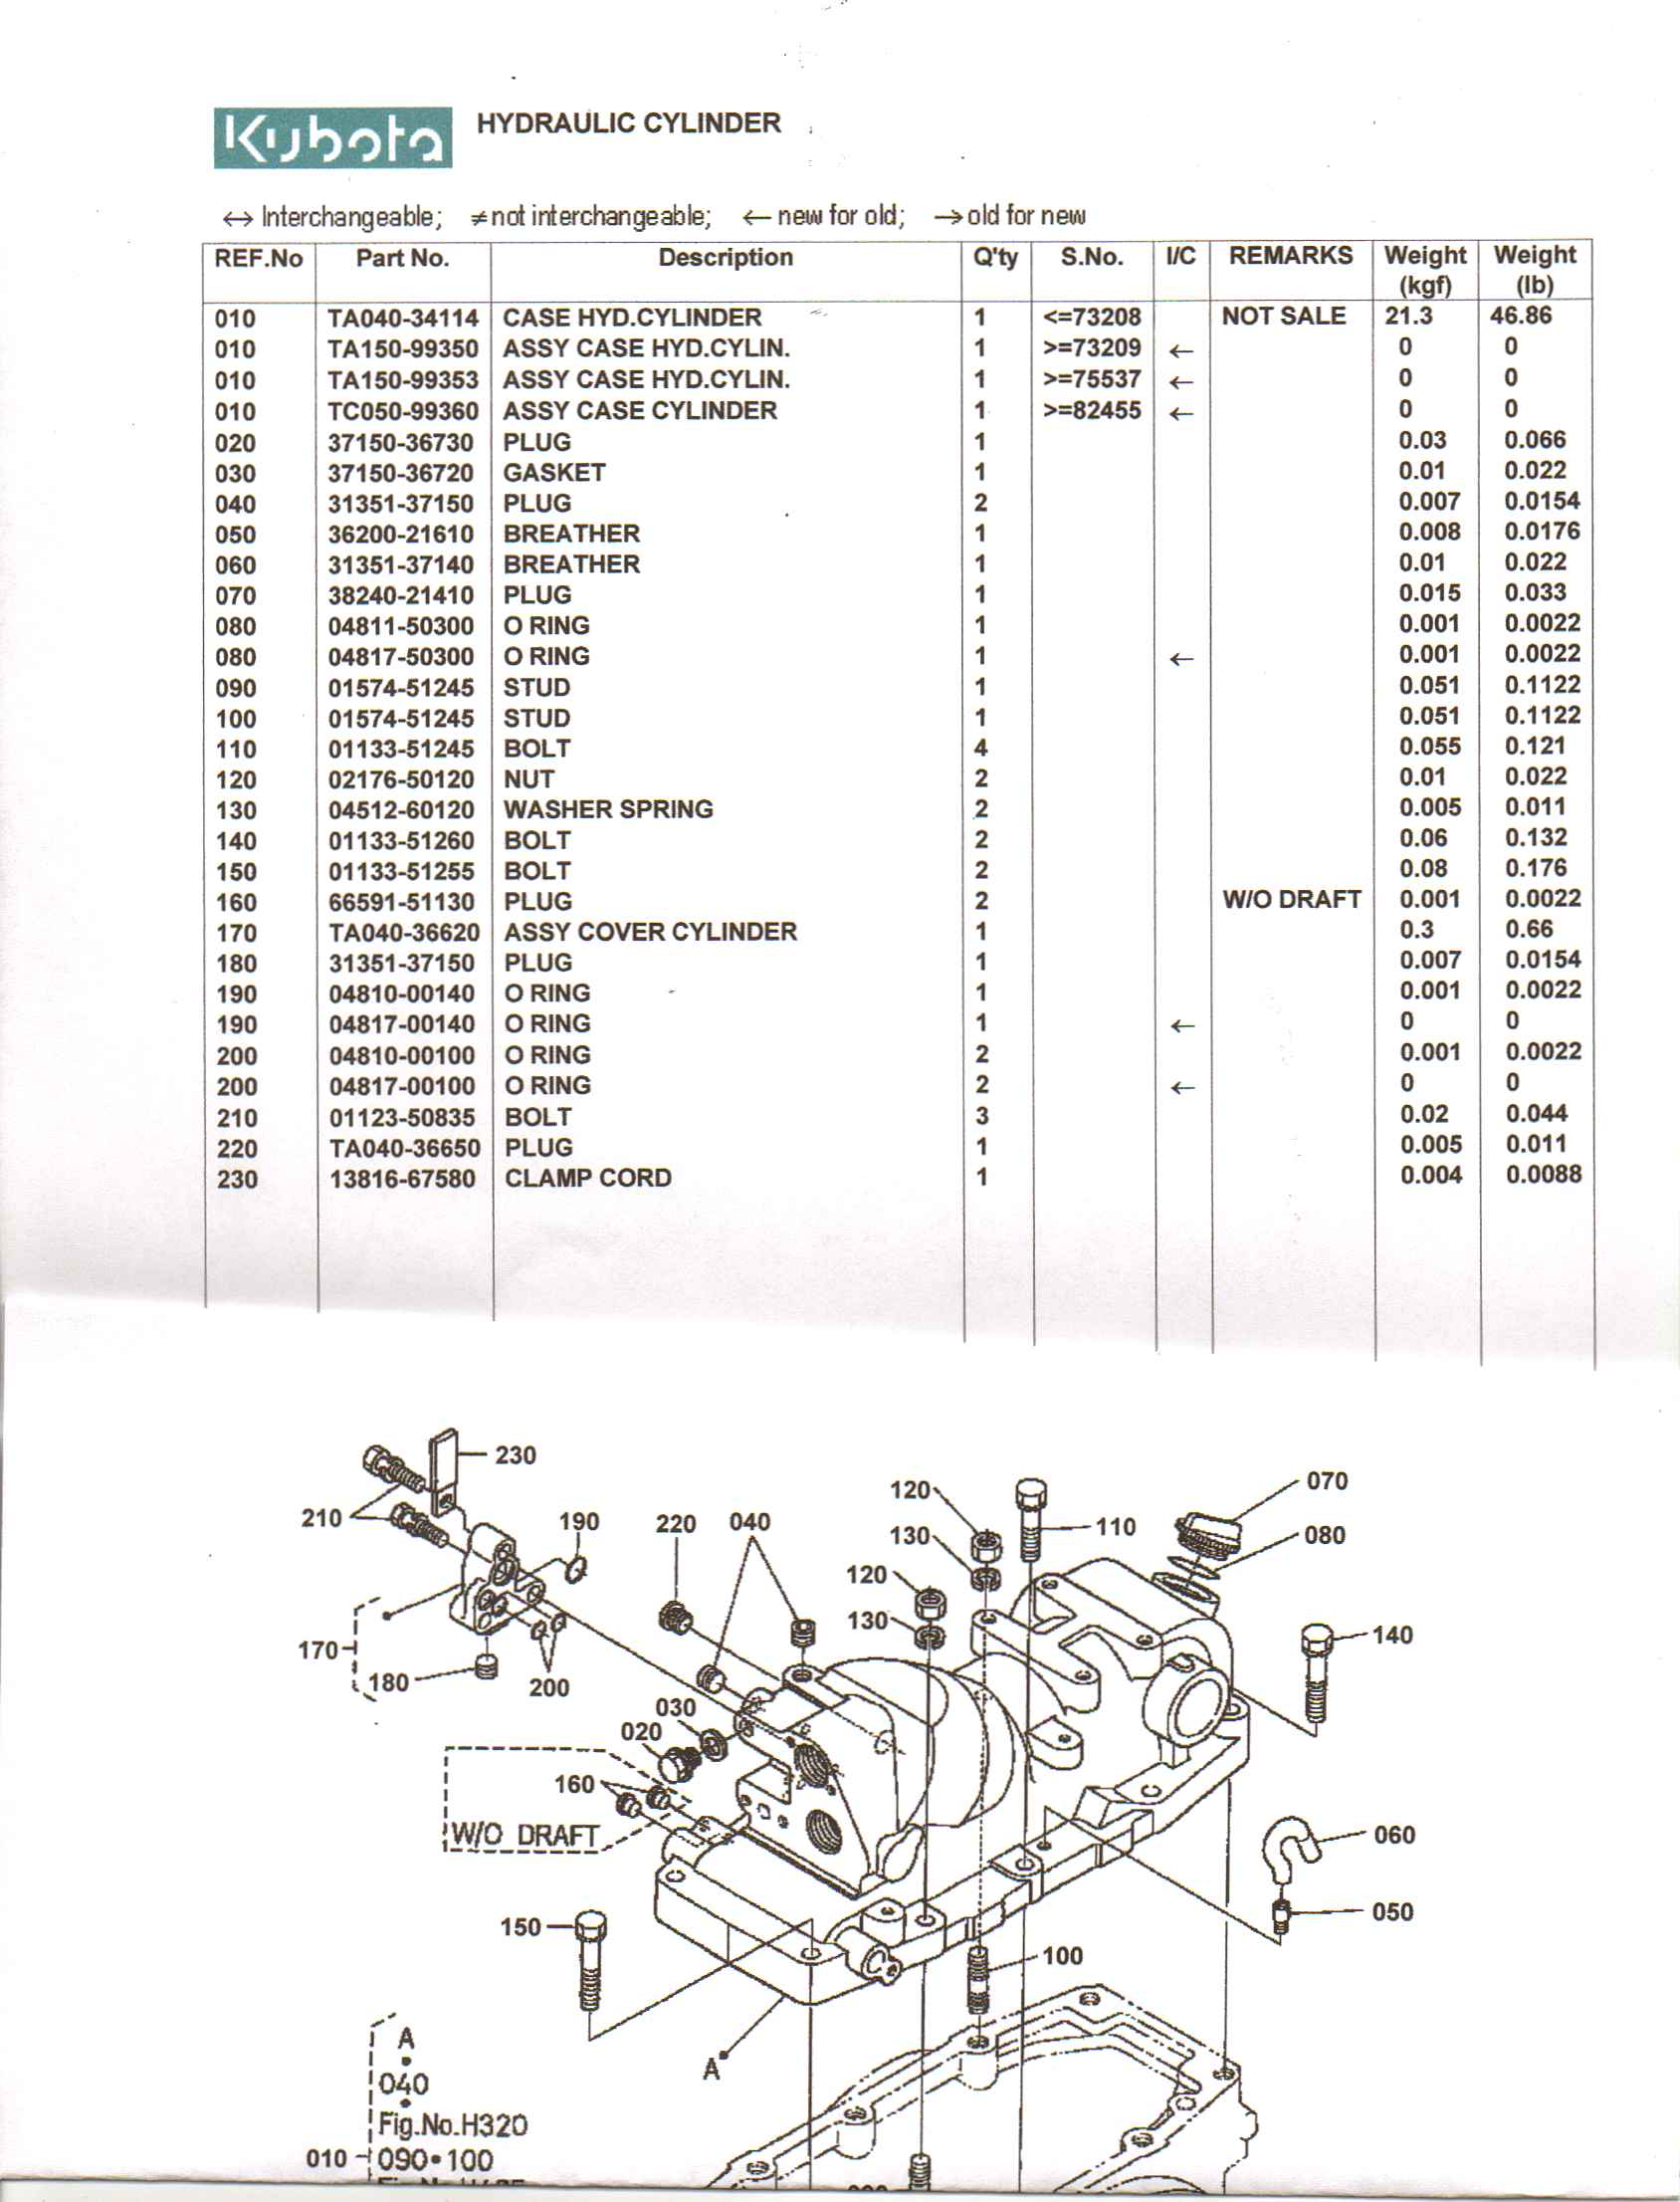 B7200 Kubota Hydraulics Diagram Control Wiring L3010 Parts Get Free Image About